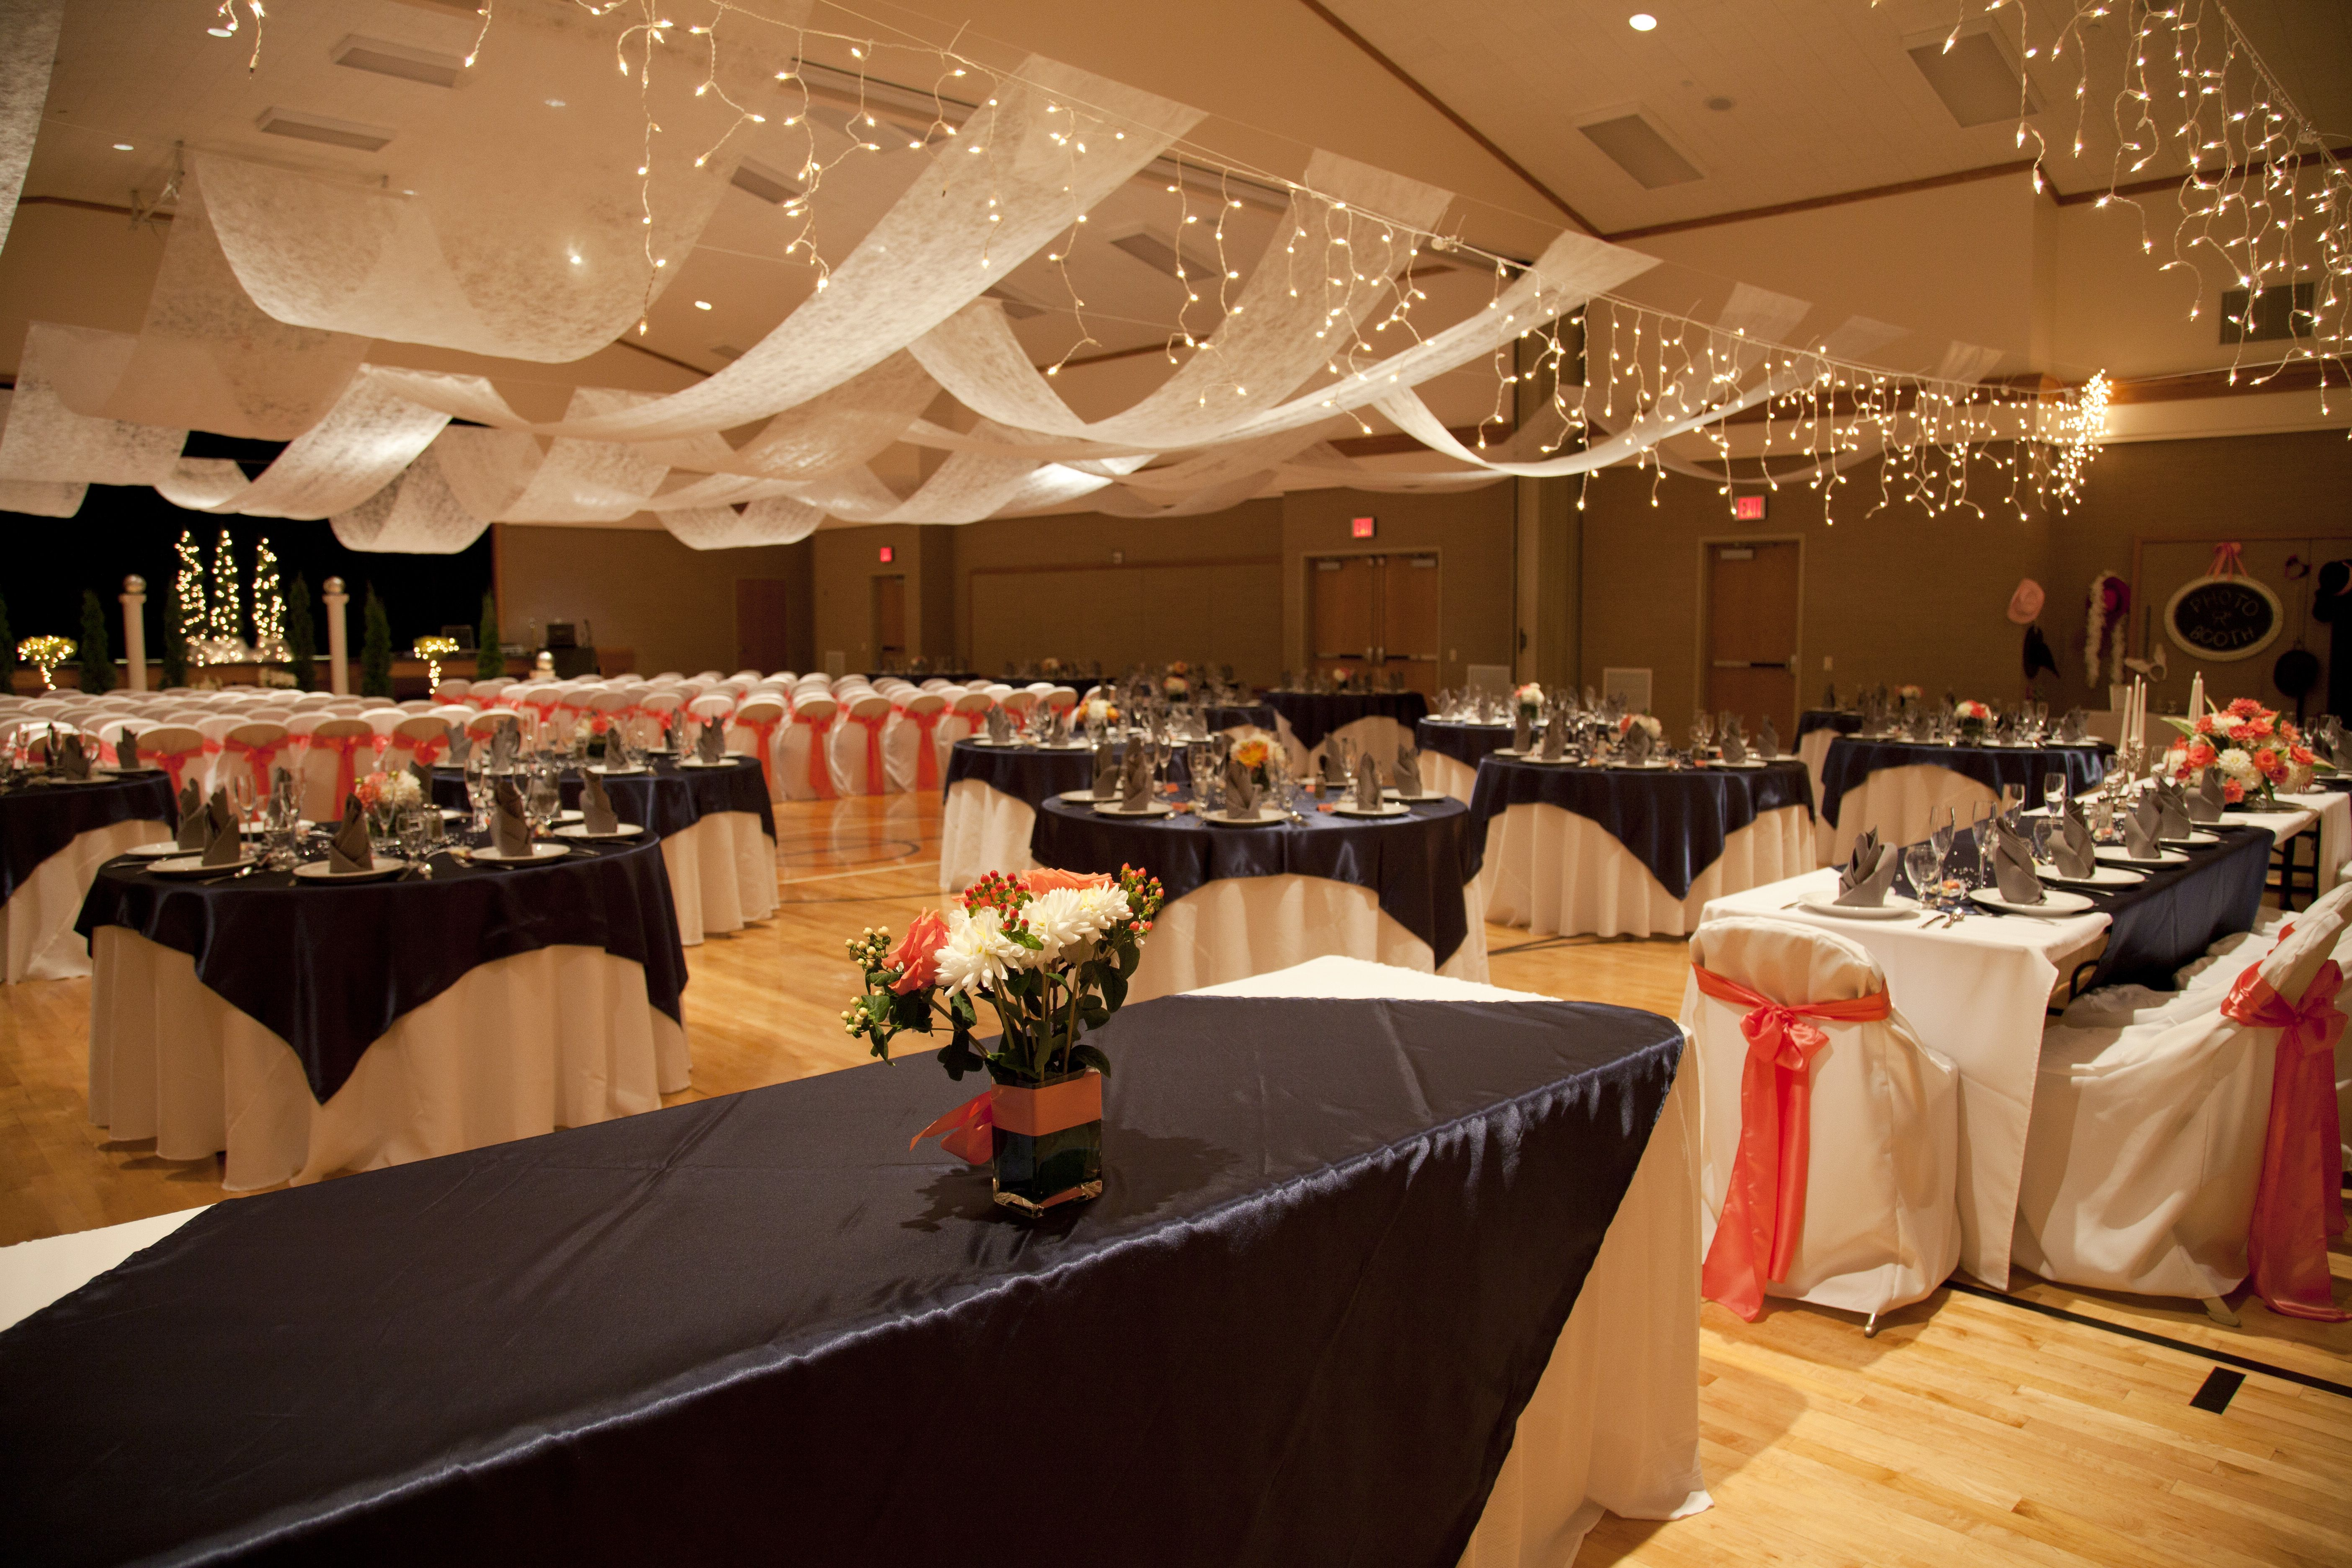 Proof that decorating a gym for a wedding can turn out looking nice proof that decorating a gym for a wedding can turn out looking nice junglespirit Choice Image